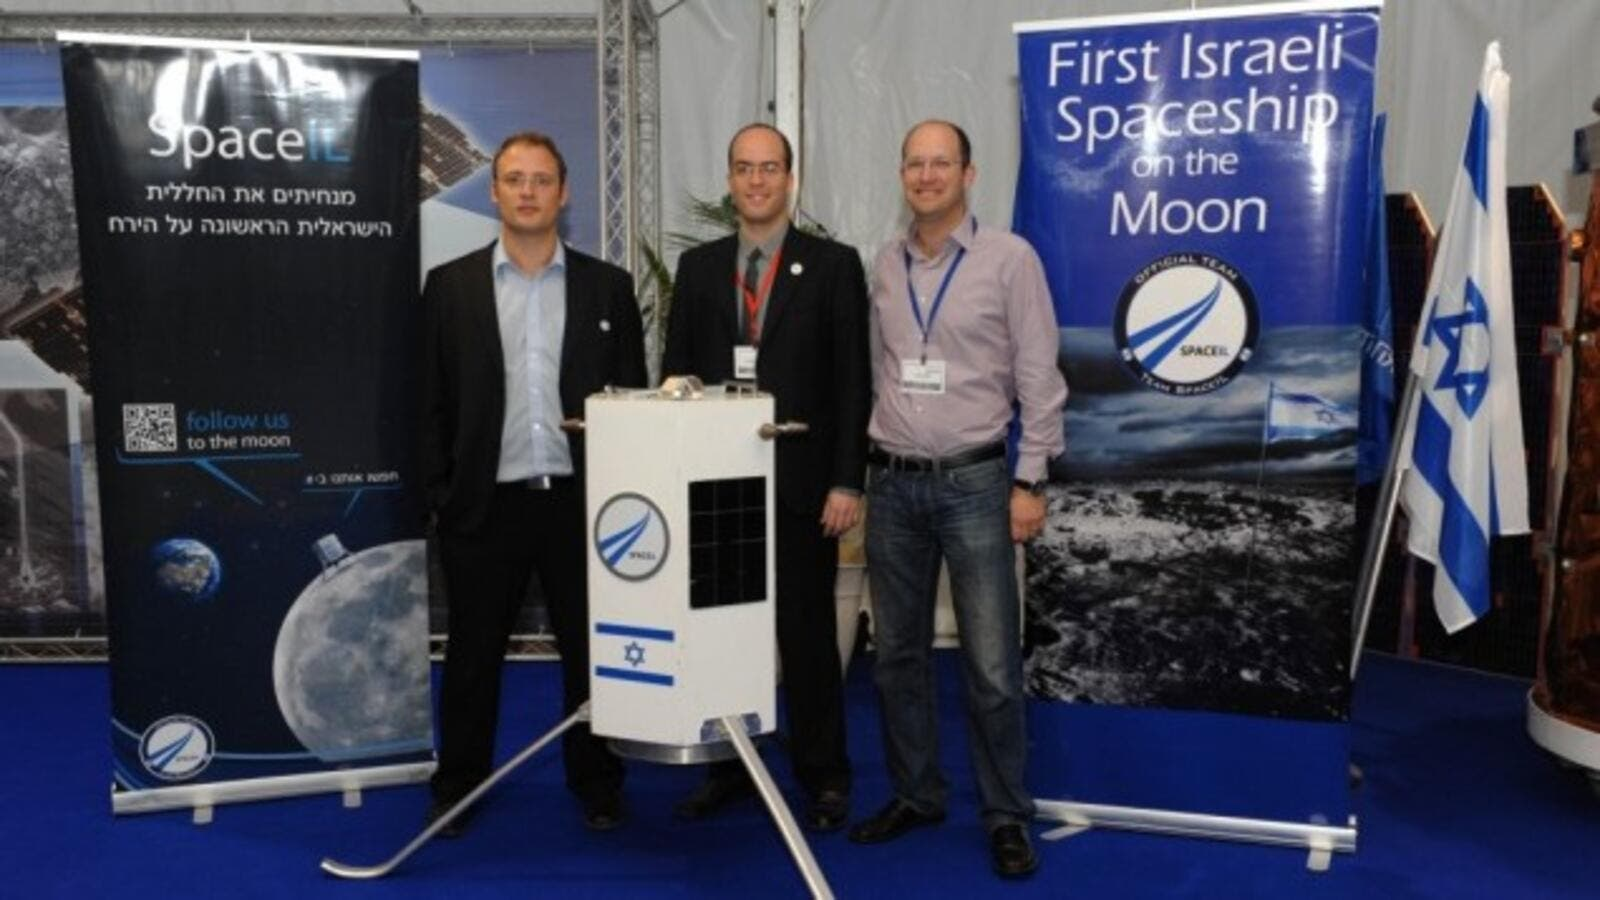 Three of SpaceIL's founders -- Yariv Bash, Yonatan Winetraub, and Kfir Damari -- with a model of the spacecraft they propose to send to the moon (photo: Times of Israel / Alon Hadar)